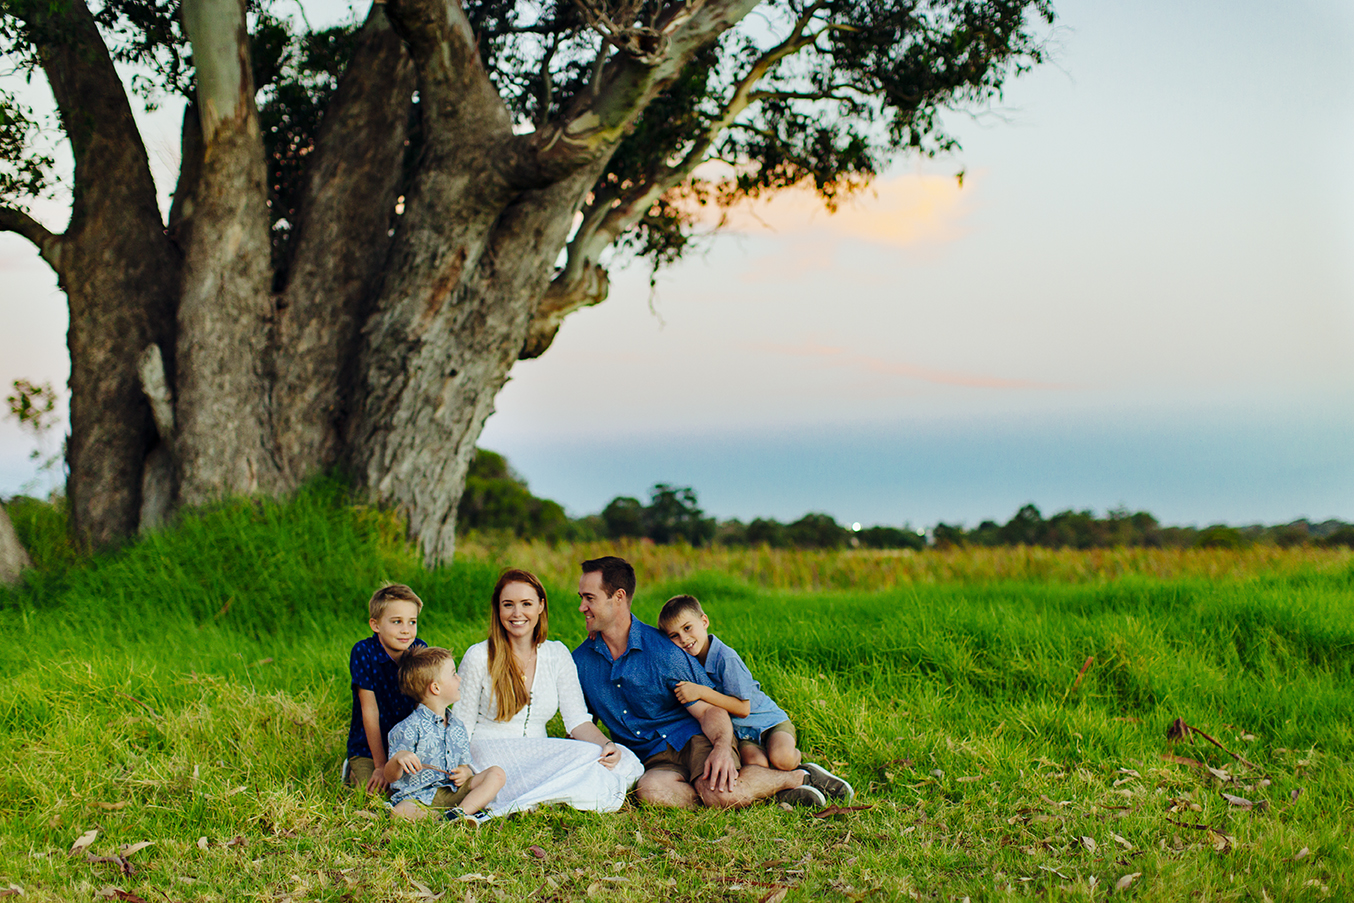 Family Sesh - $449- one hour photo session with your little fam - 20 handcrafted images - USB package with high resolution photos - online gallery to share with loved ones - special gift pack